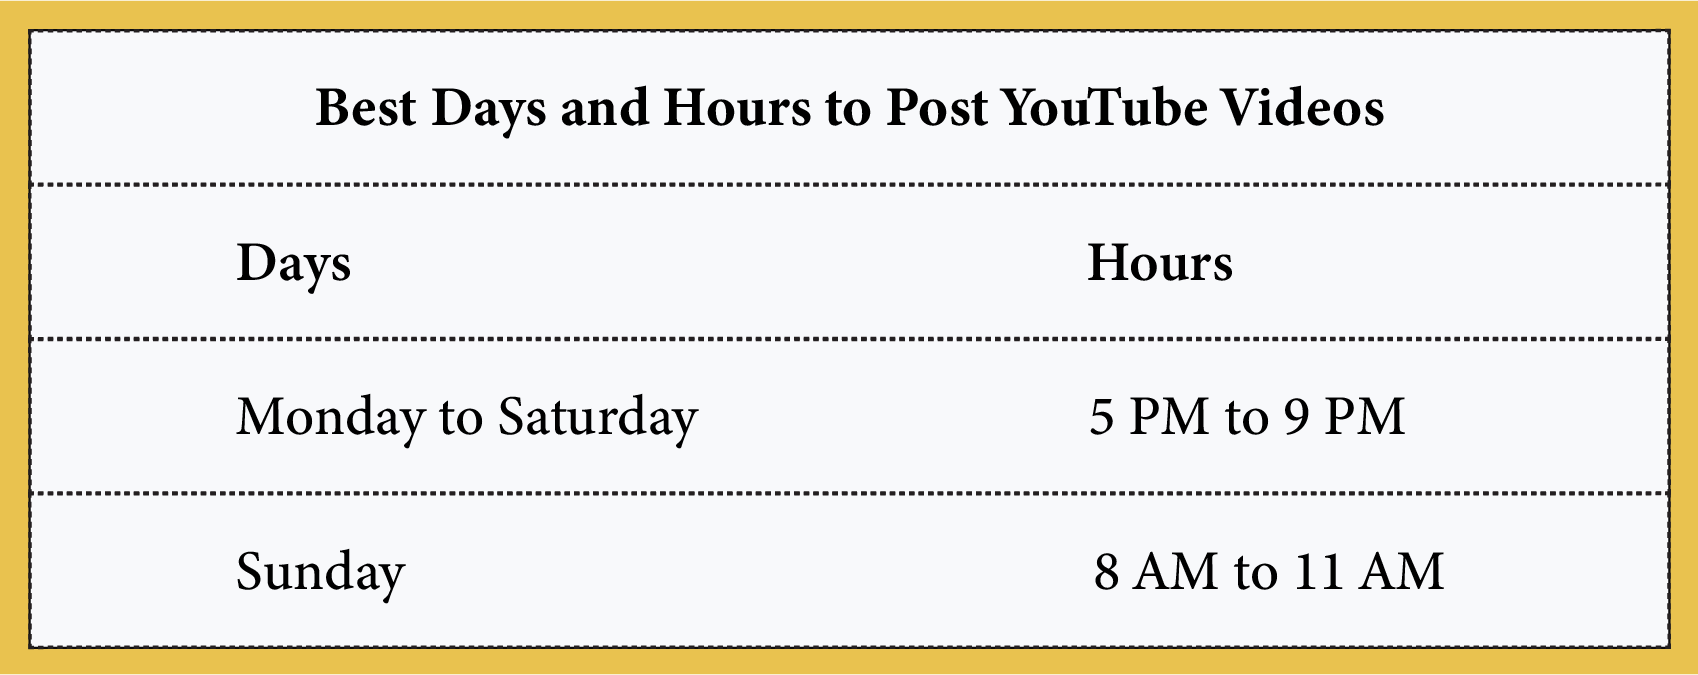 best days and hours to post youtube videos